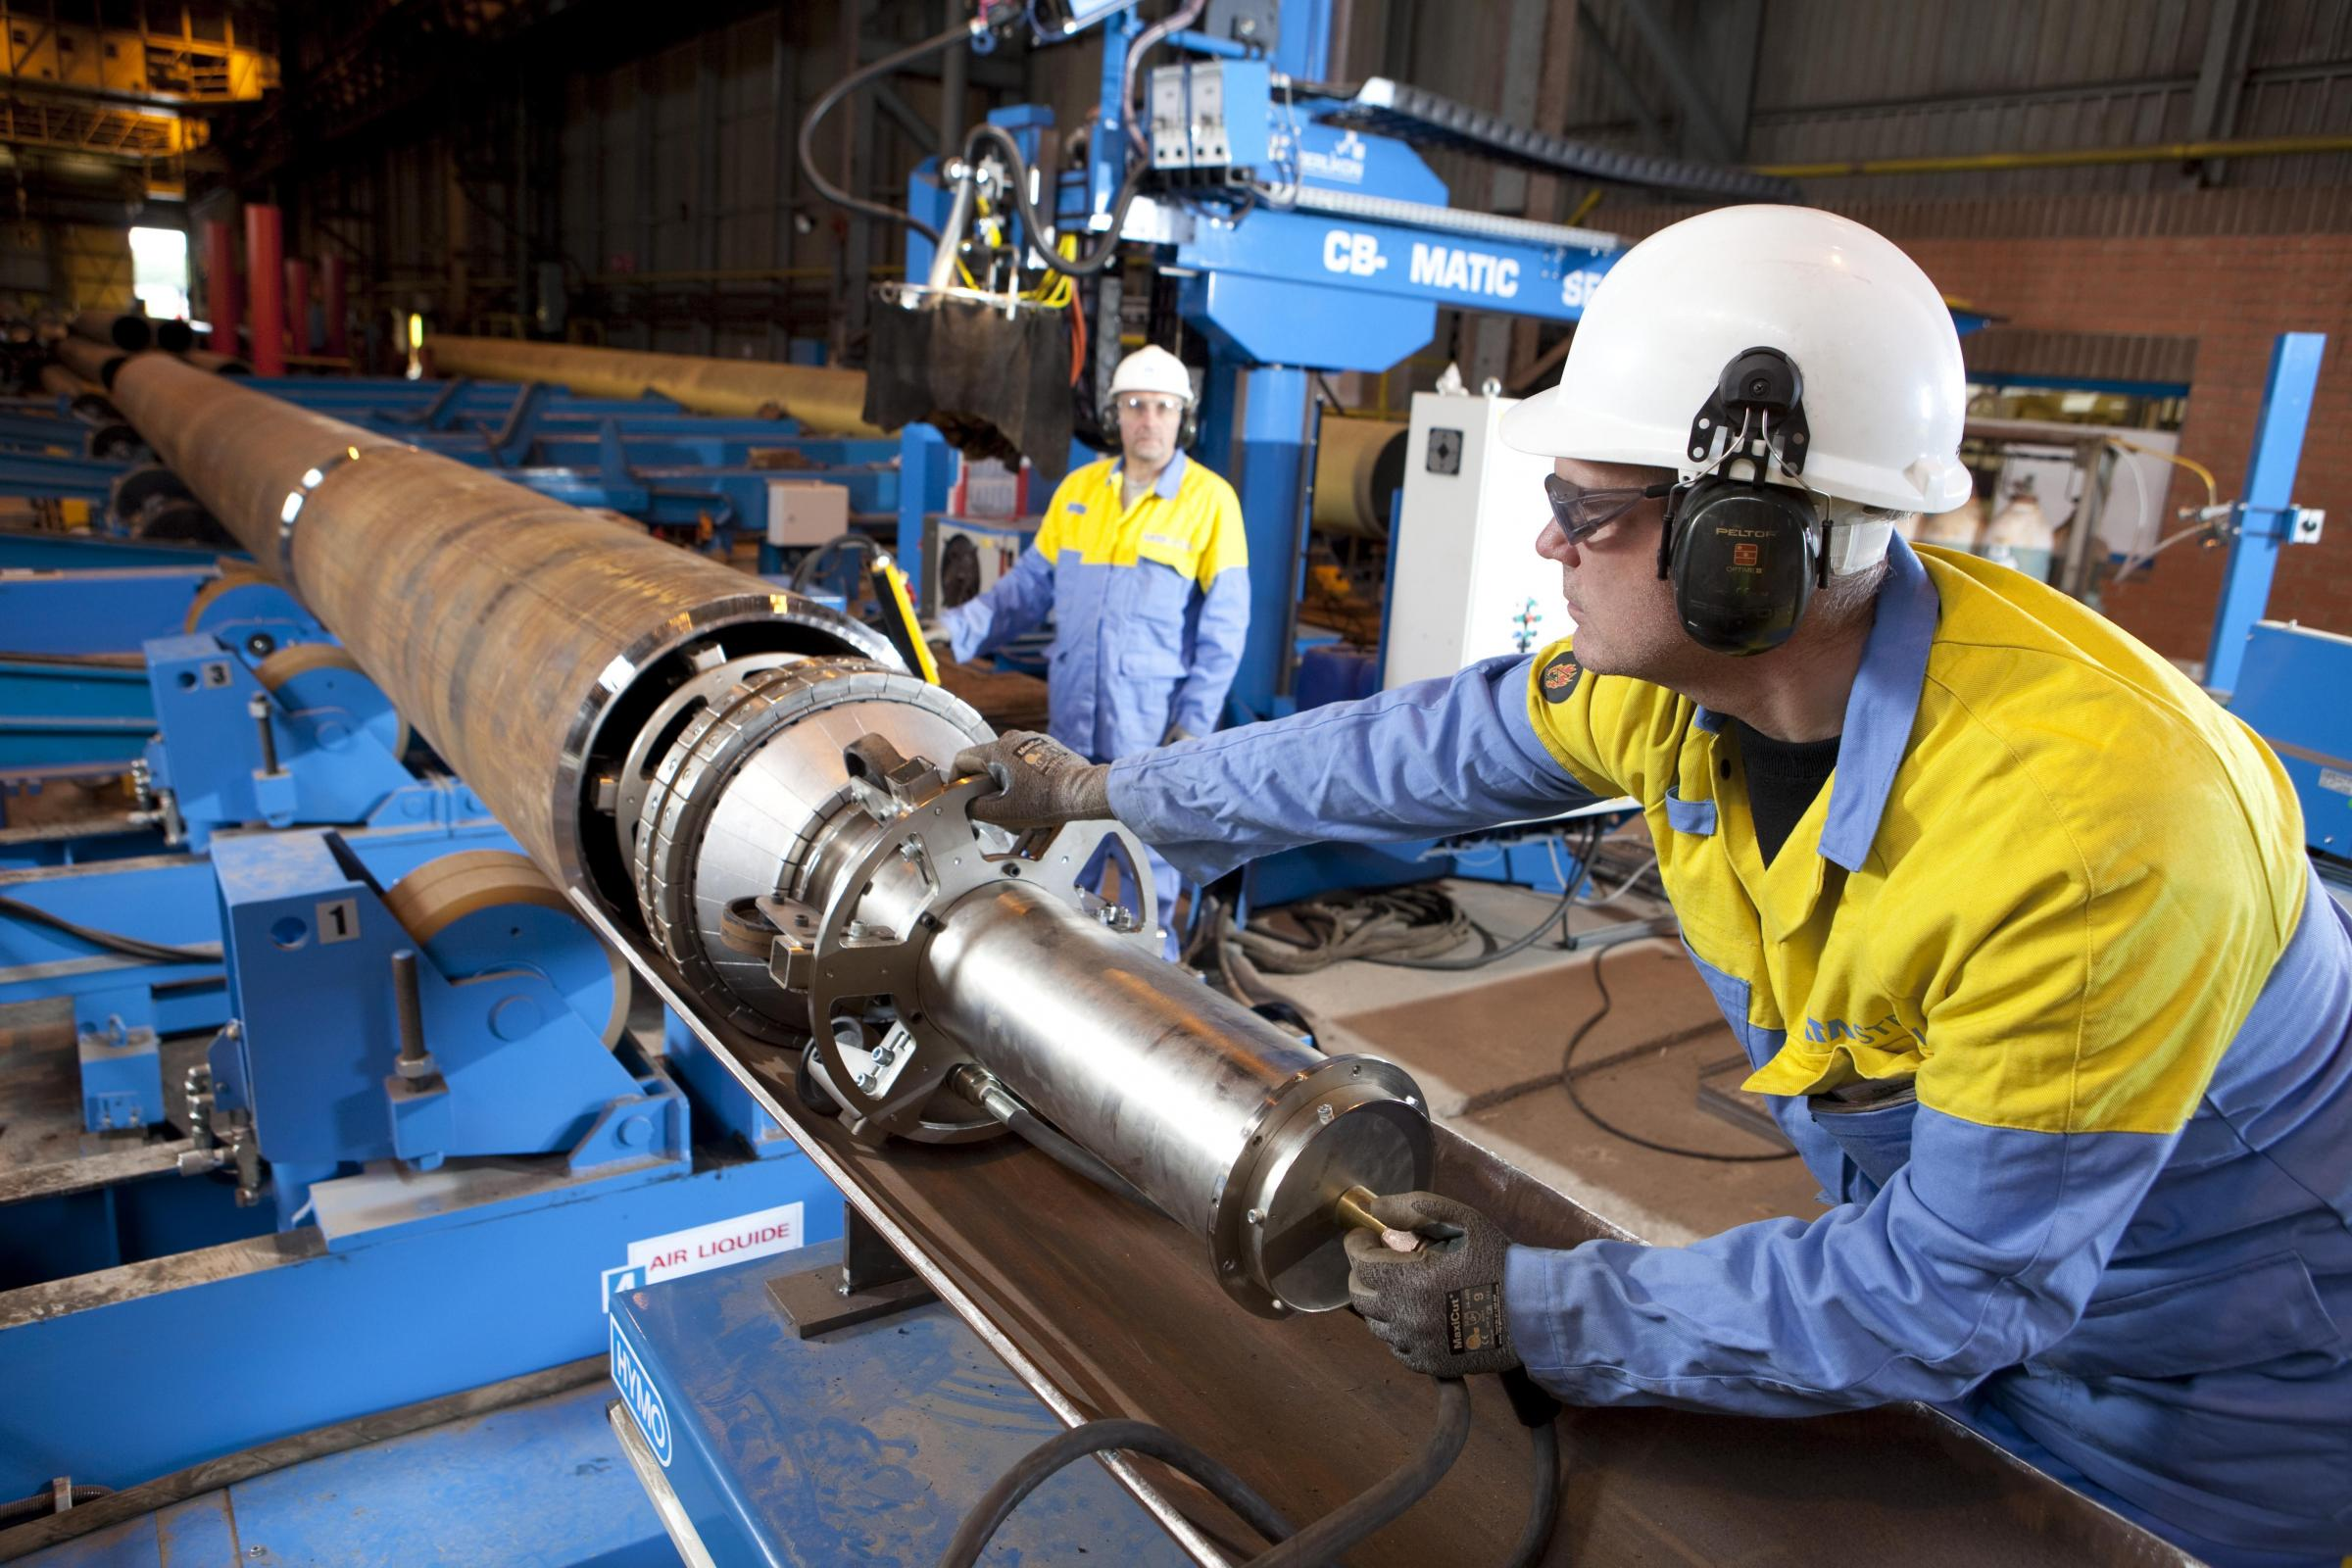 Workers operate machinery at Tata Steel's Hartlepool pipe mill